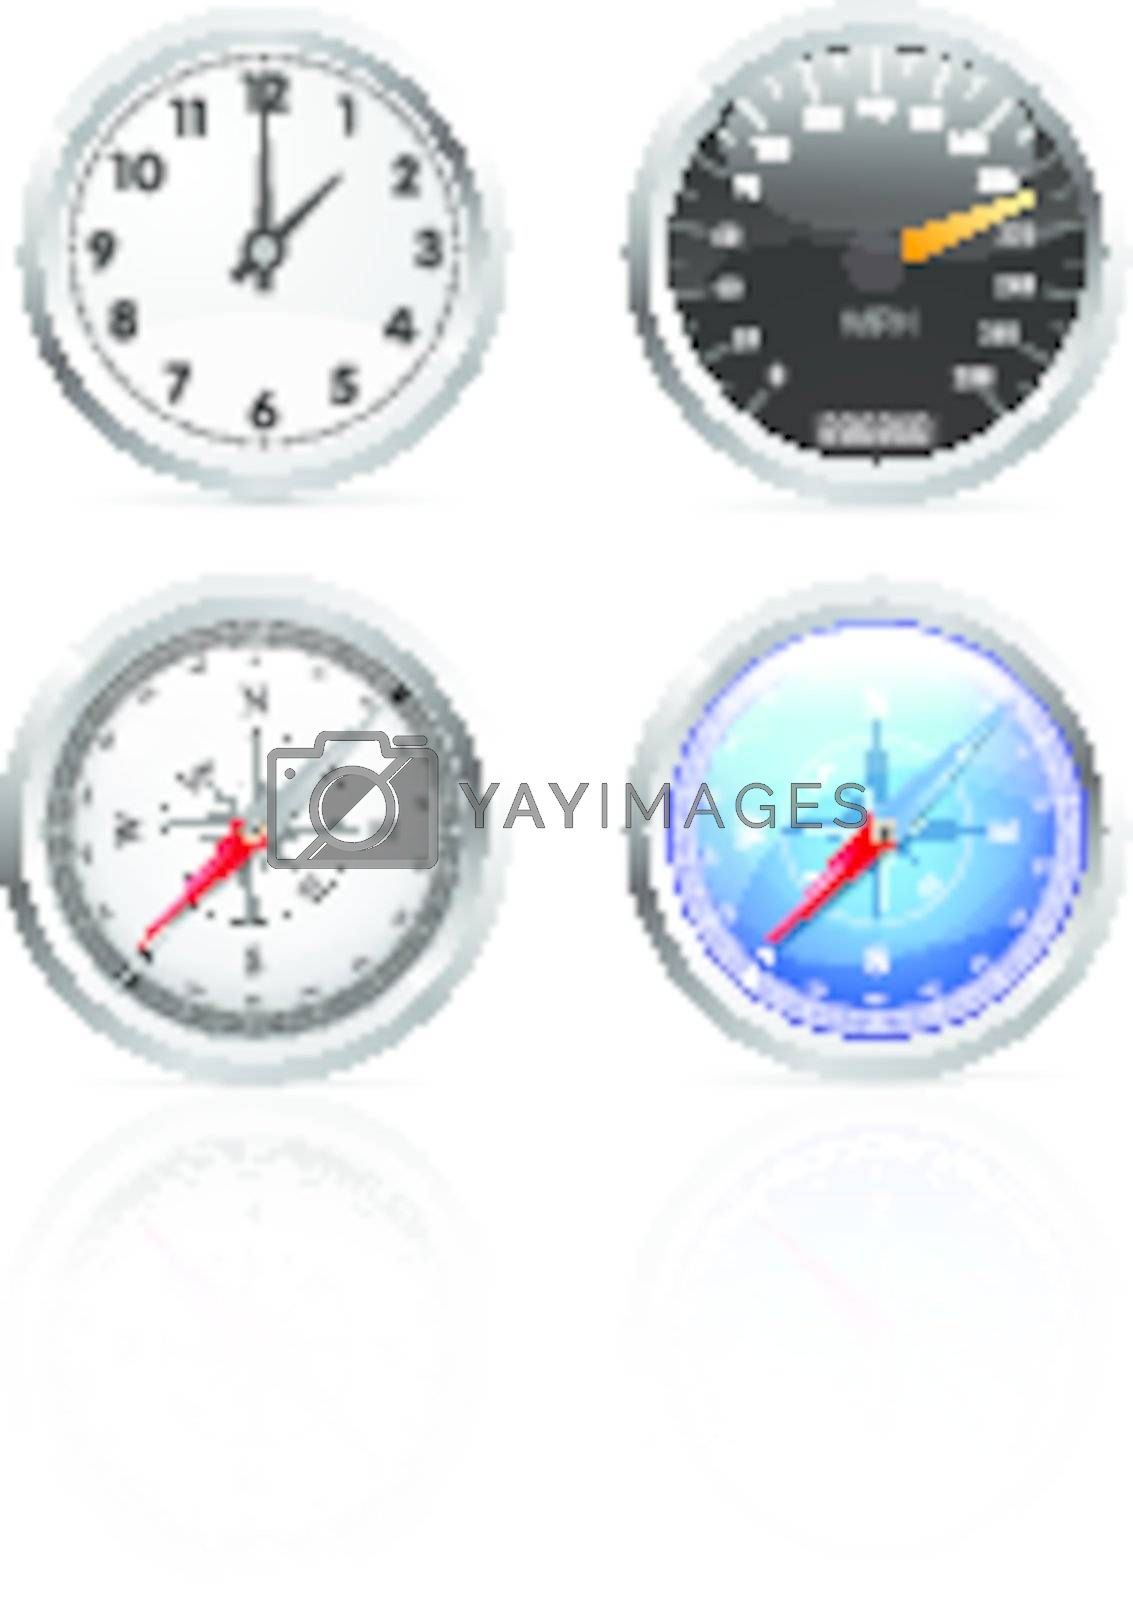 Glossy clock, speedometer and compass set illustration on white background